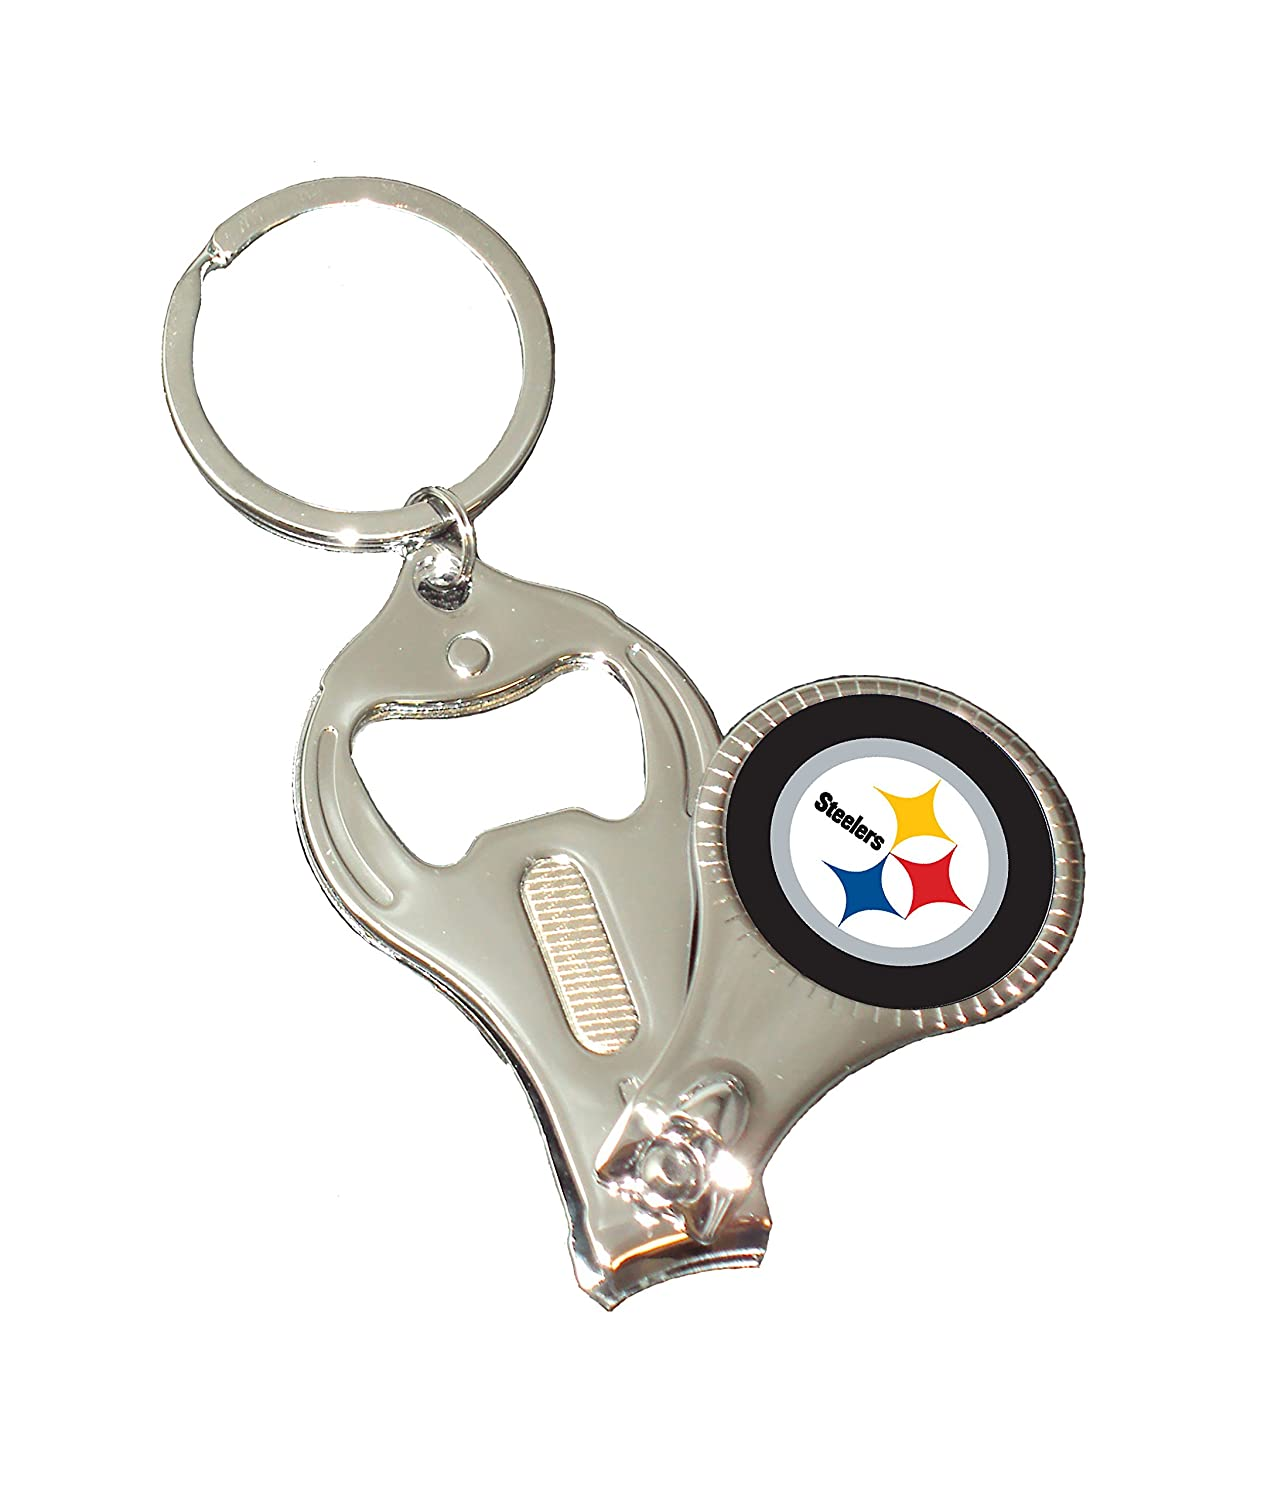 NFL Pittsburgh Steelers 3 - in - 1爪切りキーチェーン   B00UVT0VT0